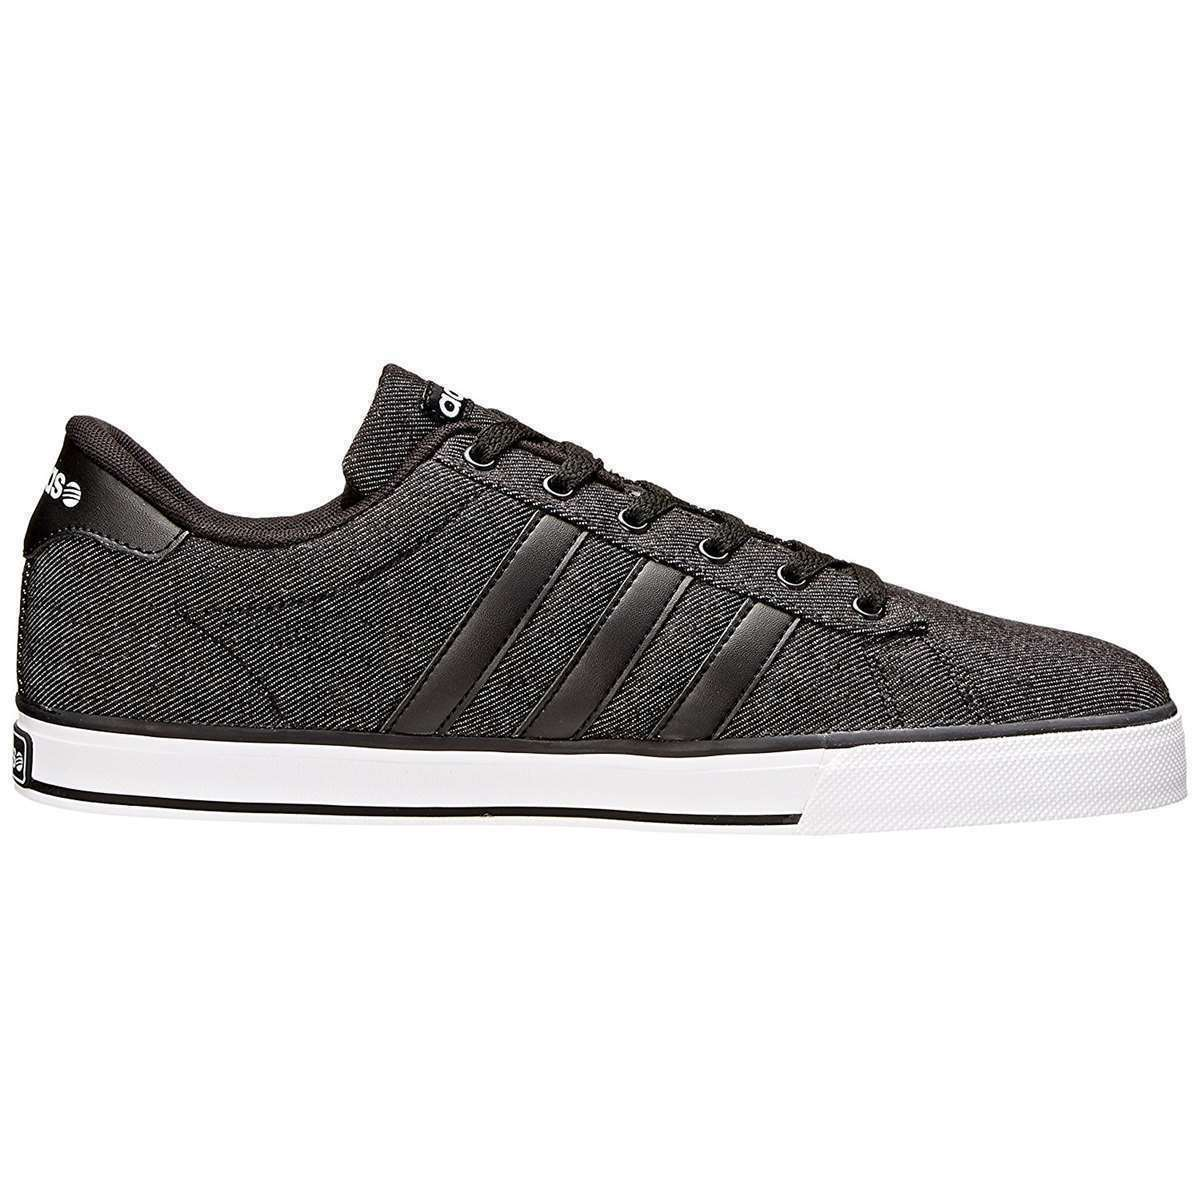 Adidas NEO Se Daily Vulc Men's Shoes Sneakers Casual Sneakers Shoes Black F76263 Size 8 *% 11e7ec